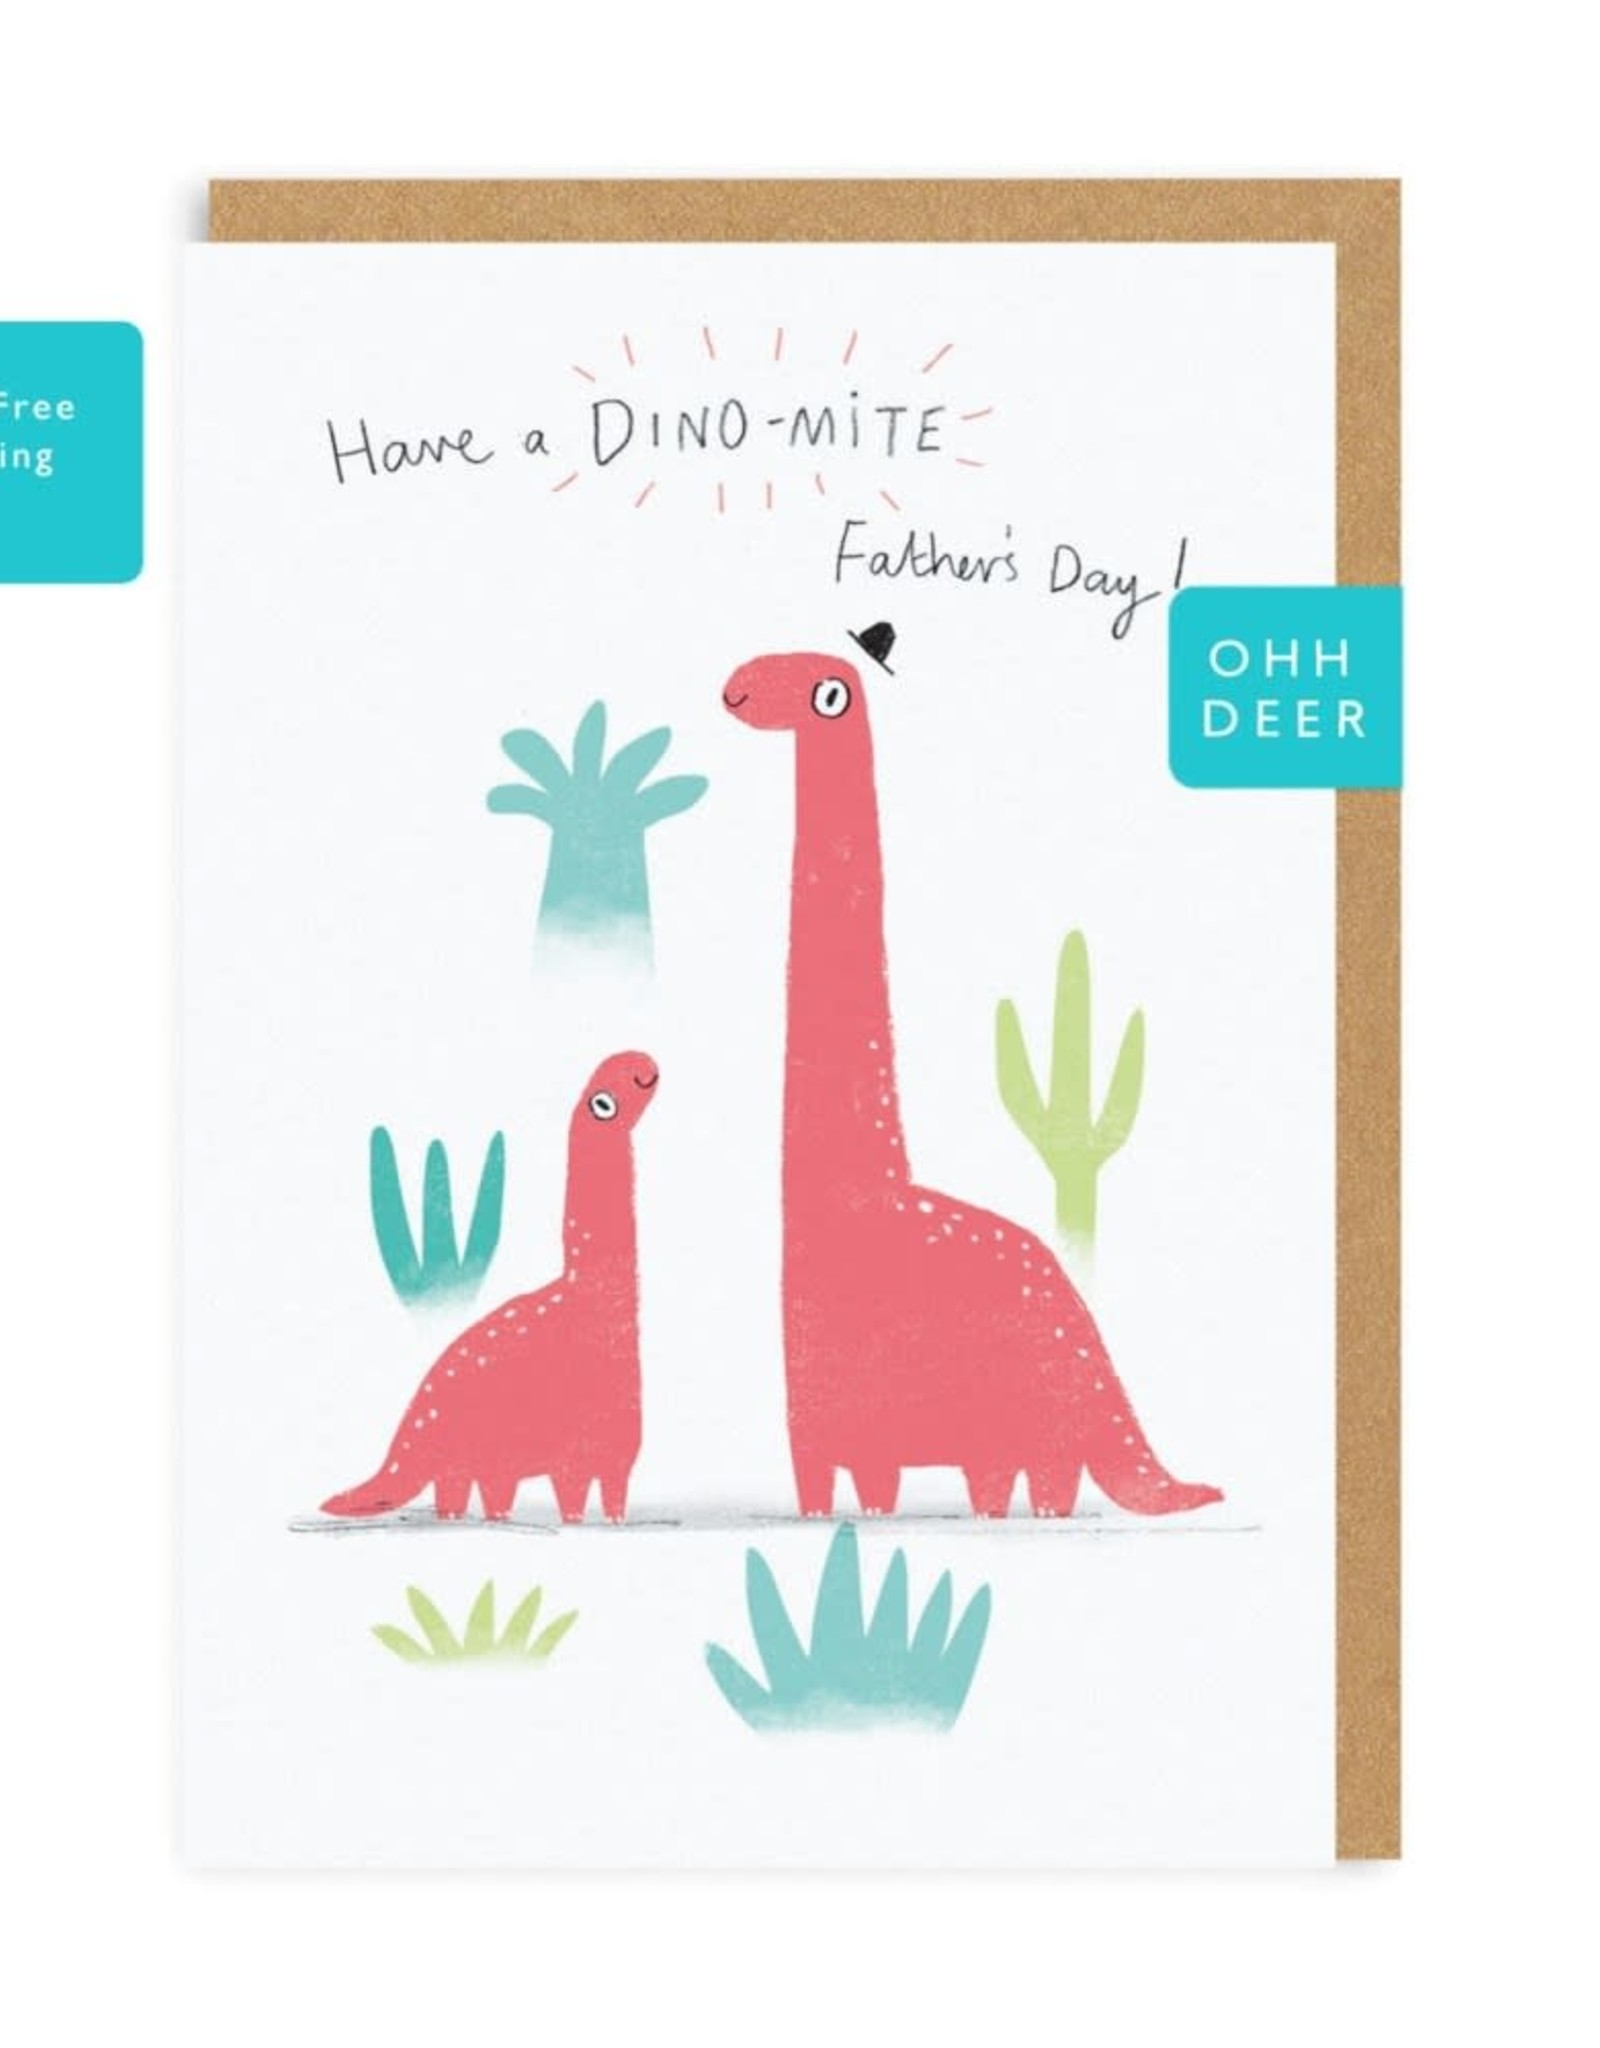 Card - Dino-mite Father's Day